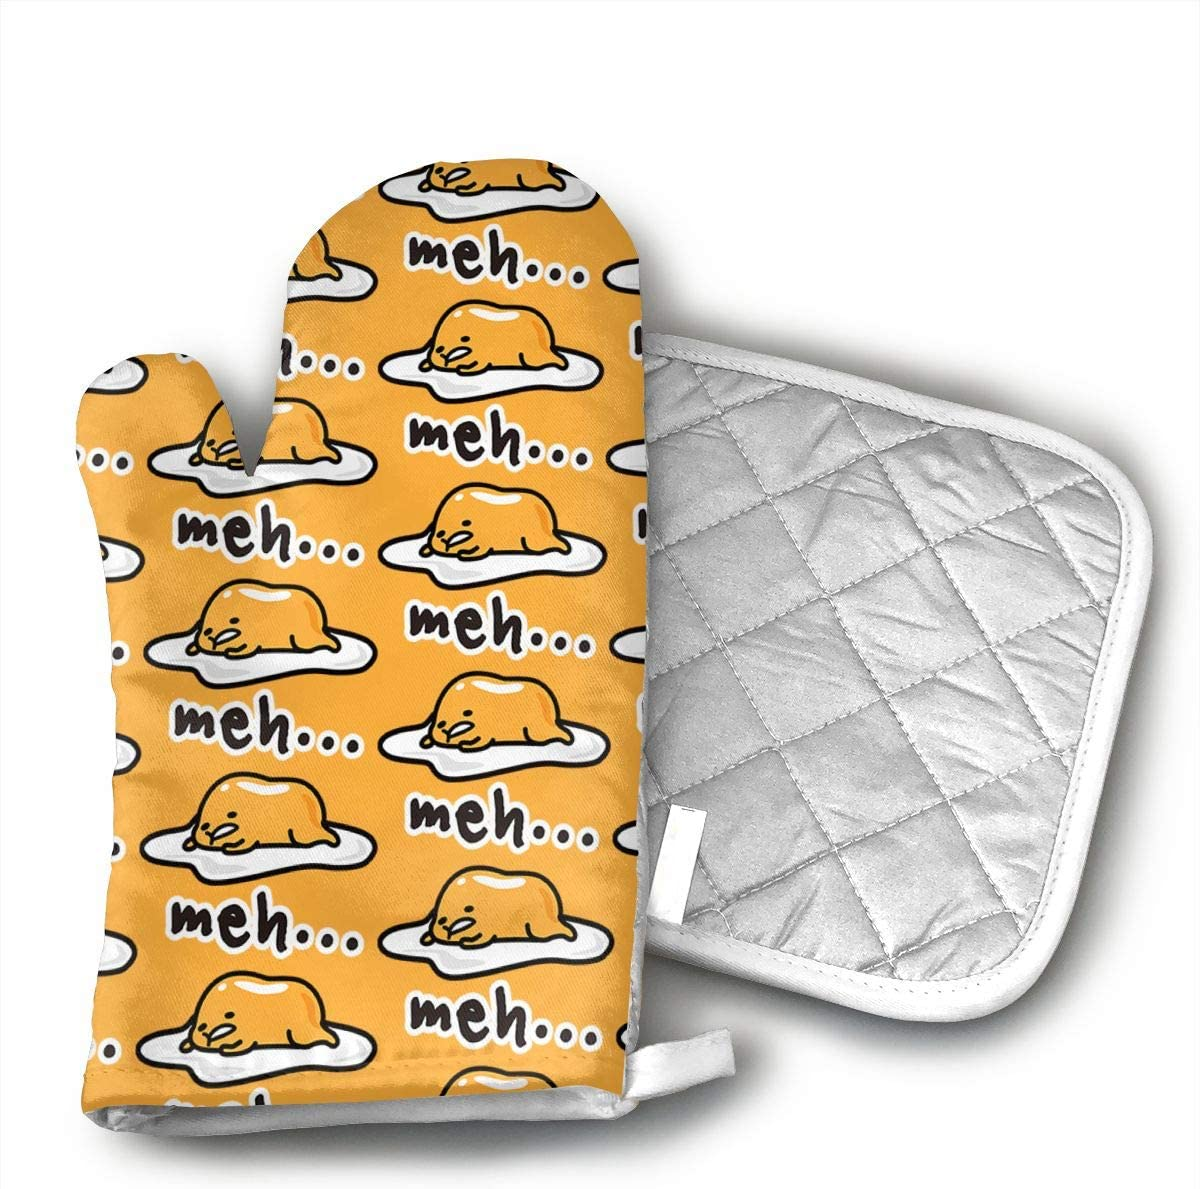 KEIOO Gudetama Cute Oven Mitts and Potholders Heat Resistant Set of 2 Kitchen Set Non-Slip Grip Oven Gloves BBQ Cooking Baking Grilling